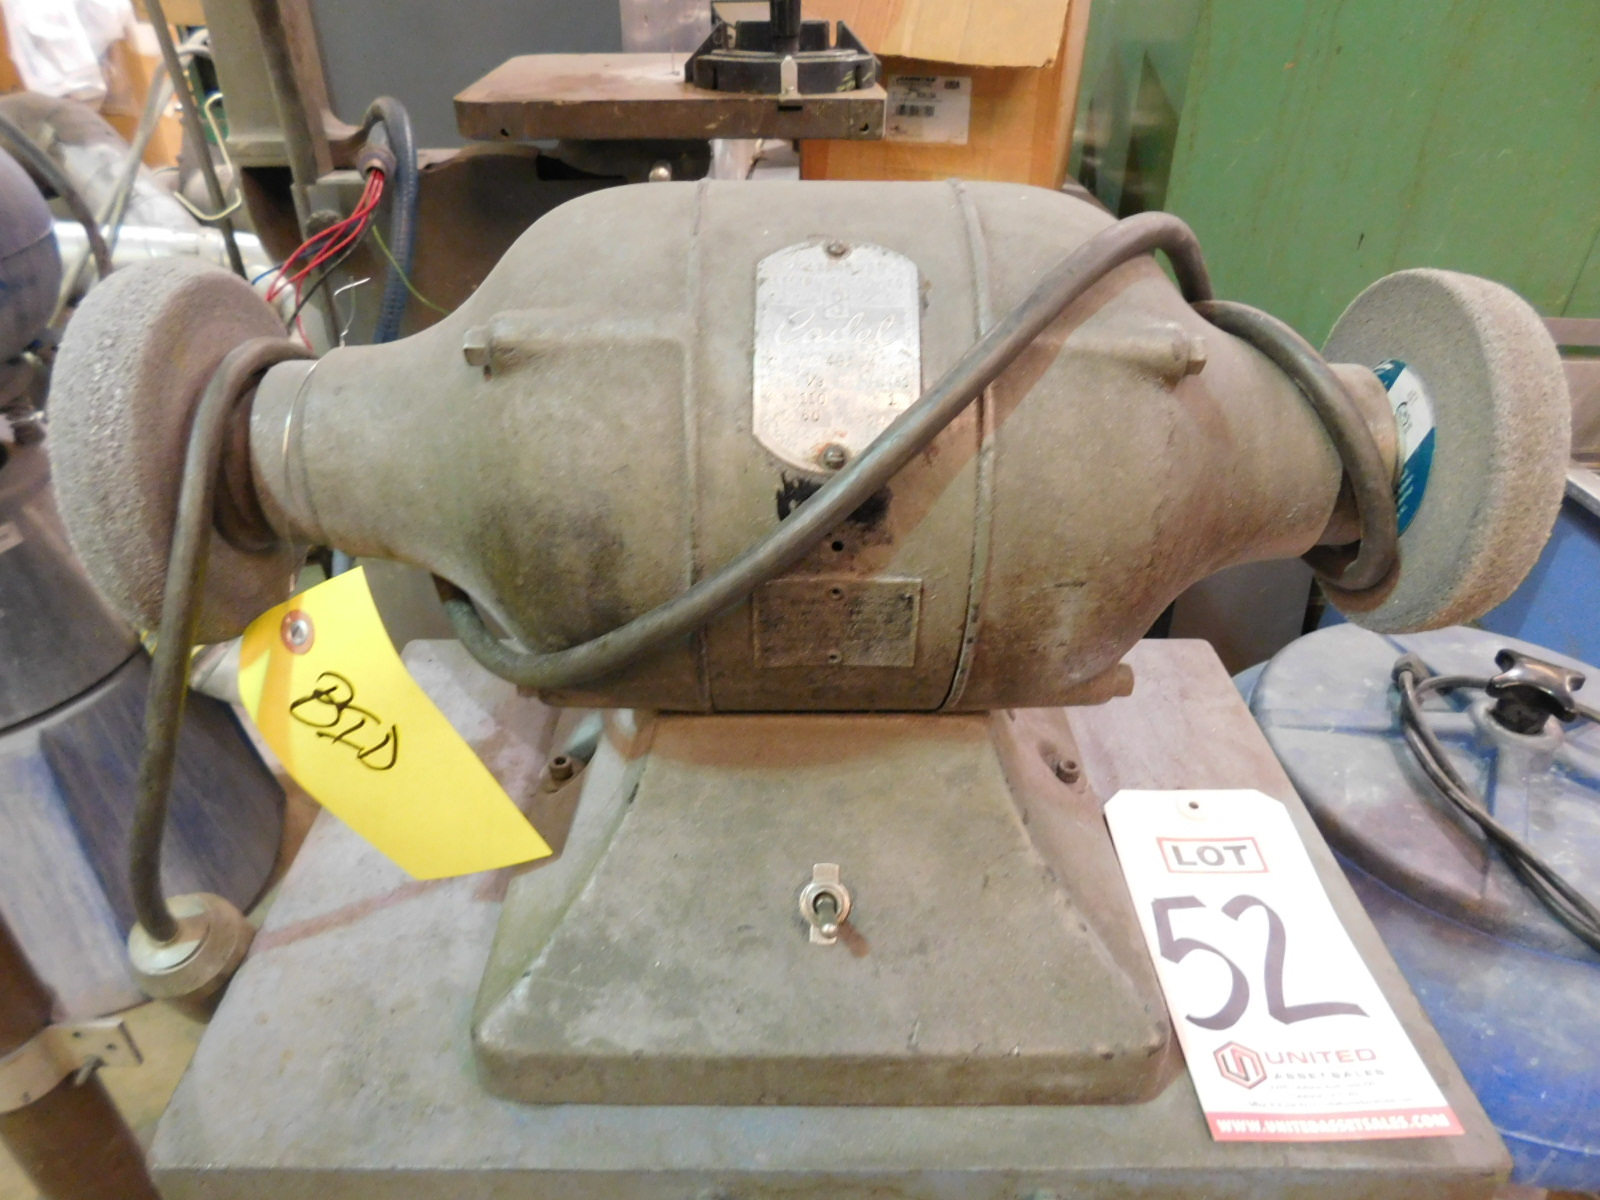 Lot 52 - DOUBLE END GRINDER W/ STAND, STANDARD ELECTRIC CADET, 1/3 HP, 3450 RPM, 110V, SINGLE PHASE